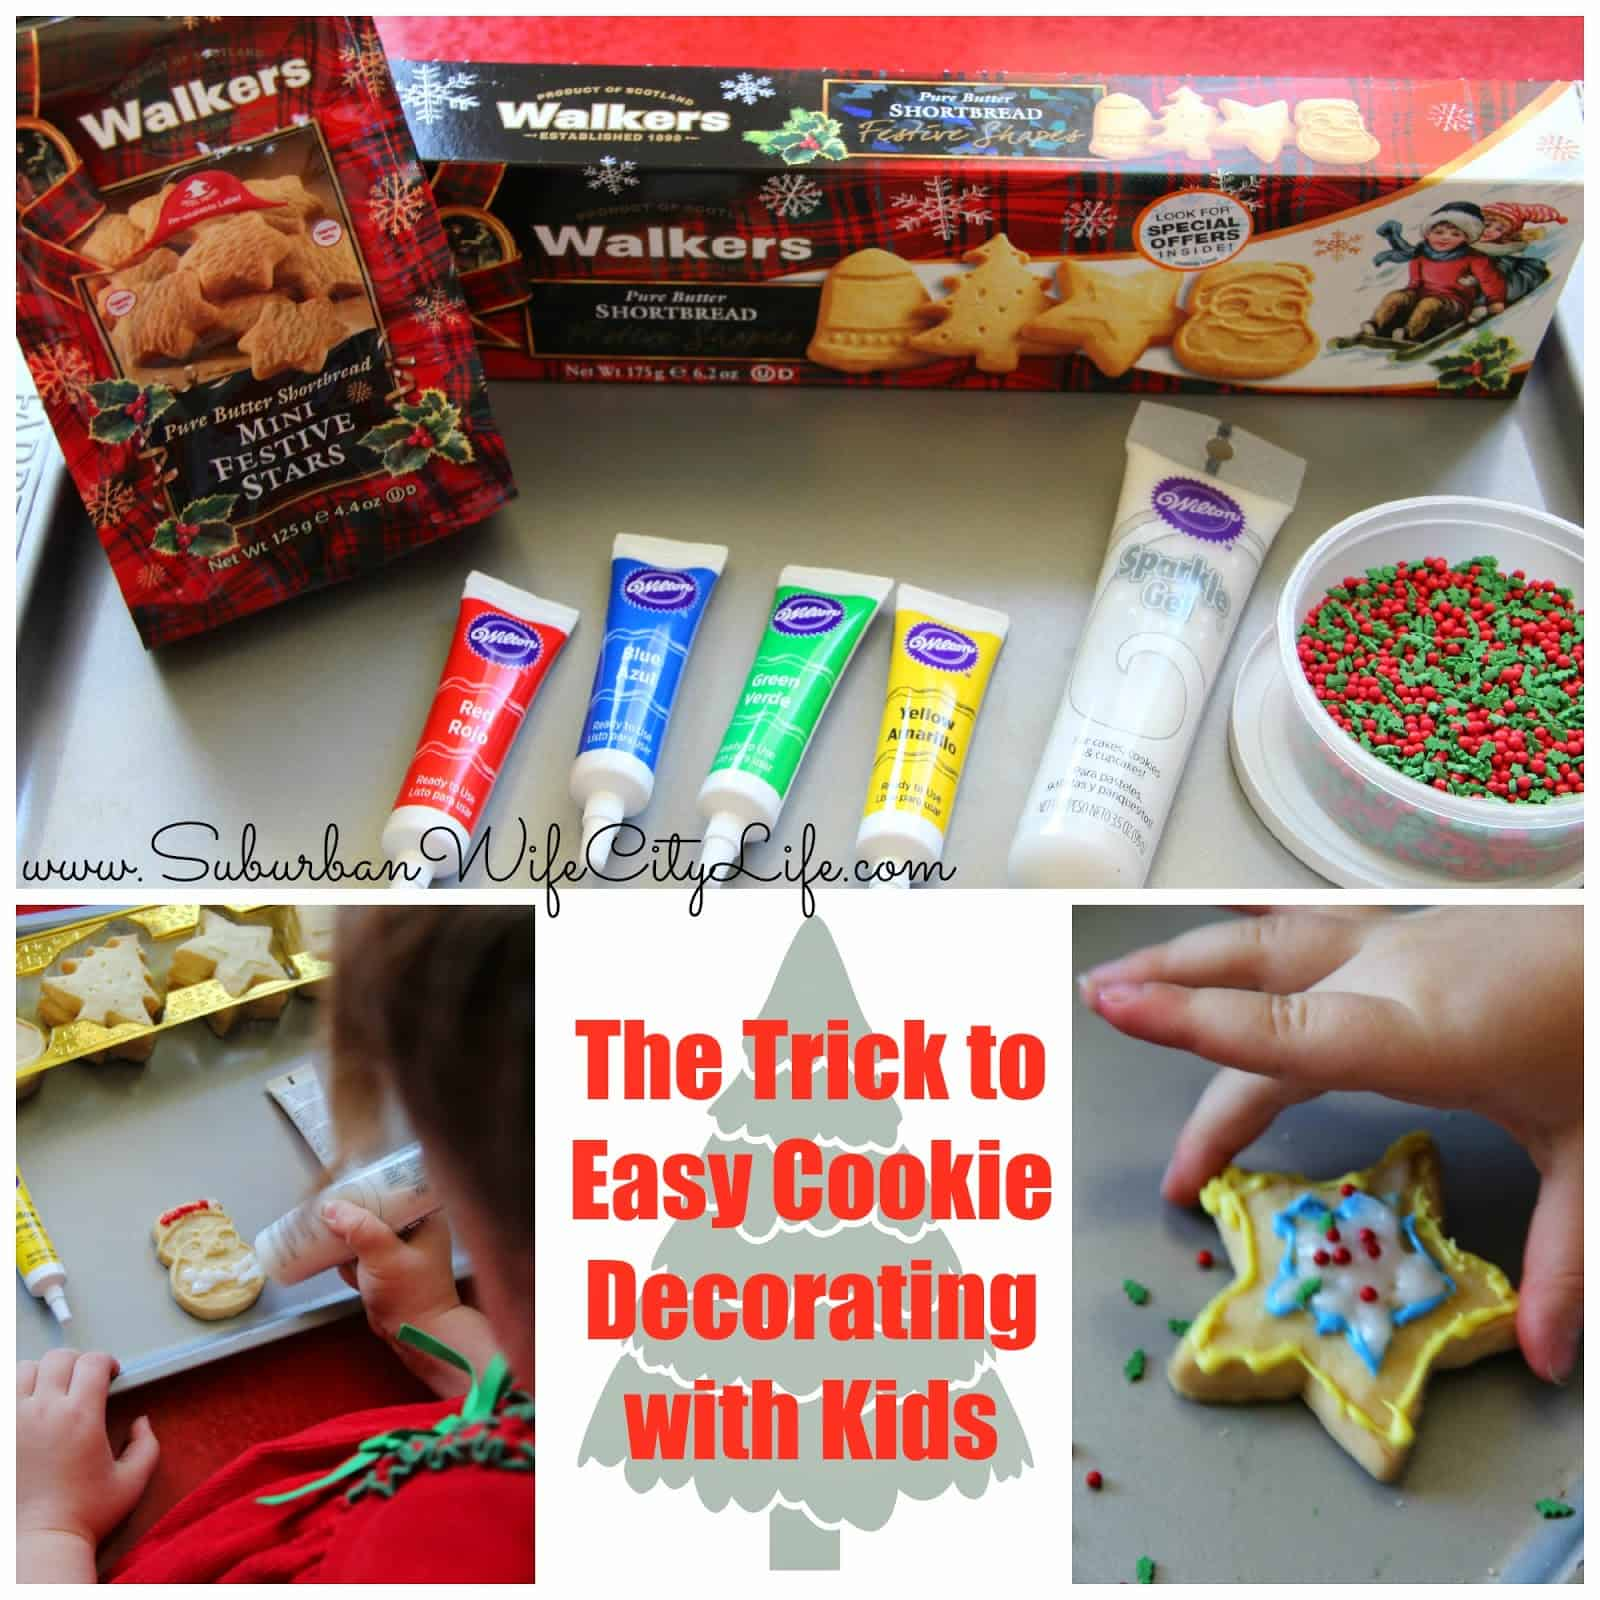 The Trick to Easy Cookie Decorating with Kids